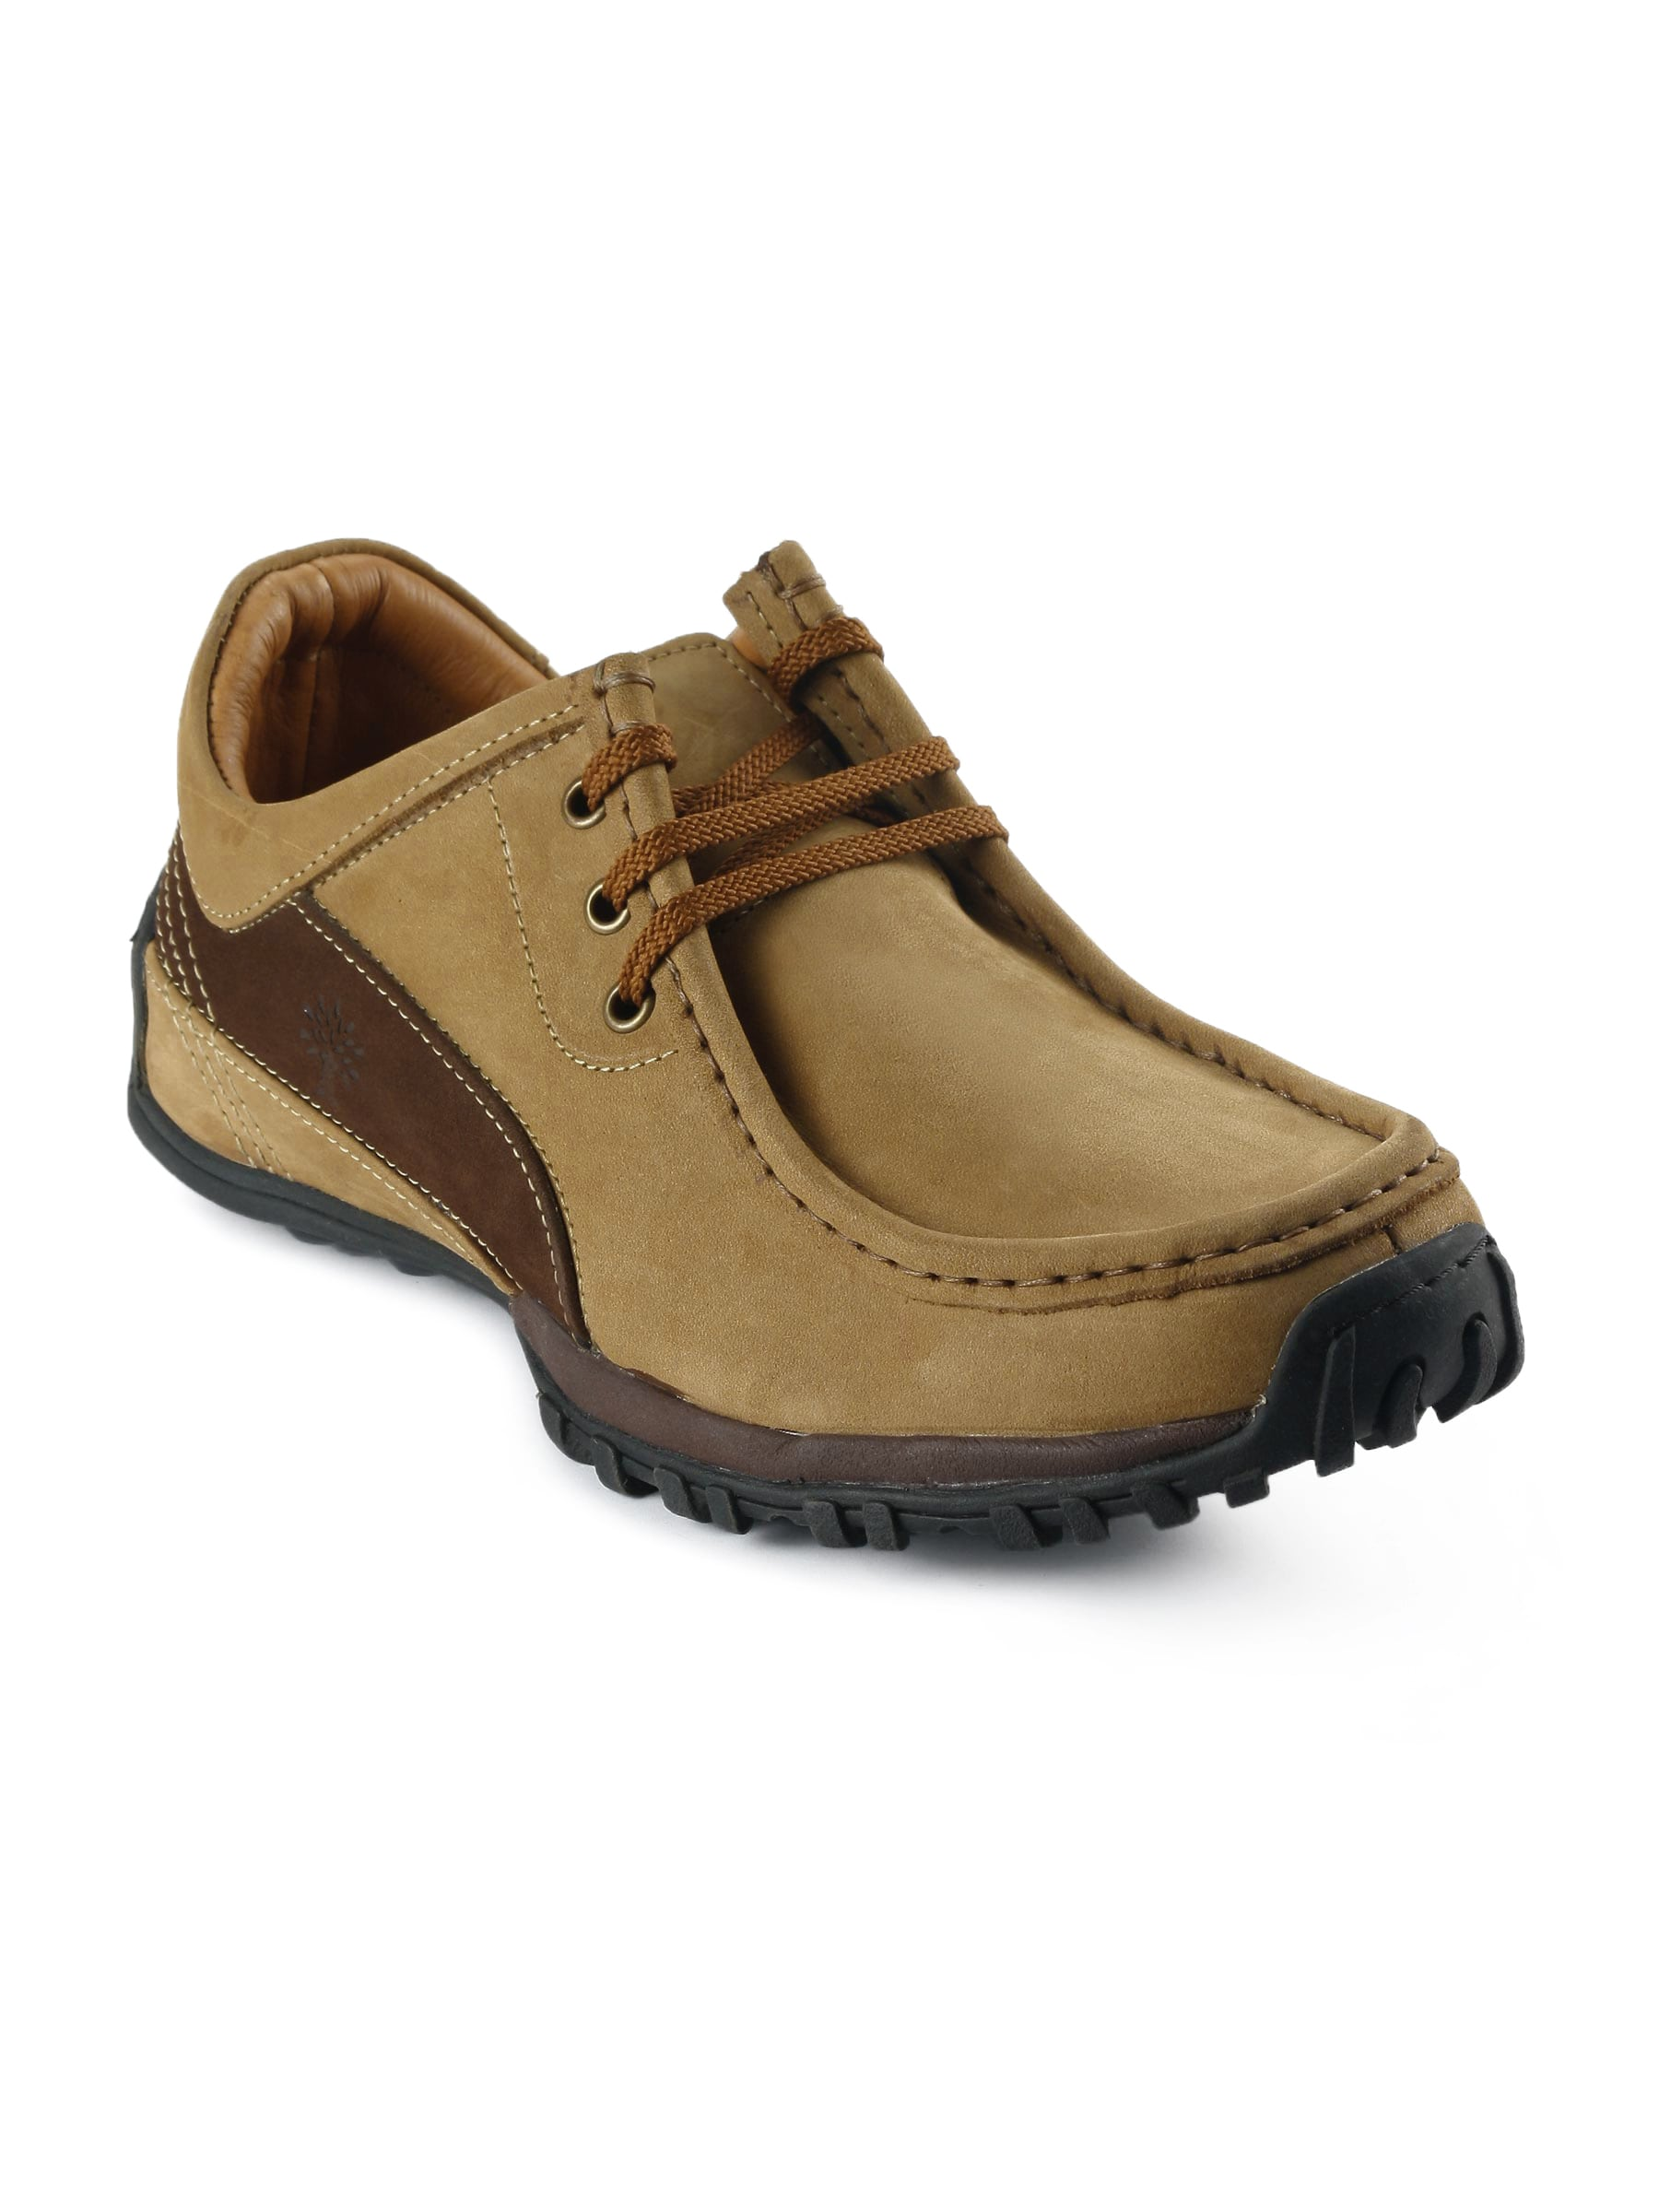 buy woodland brown casual shoes 288 footwear for